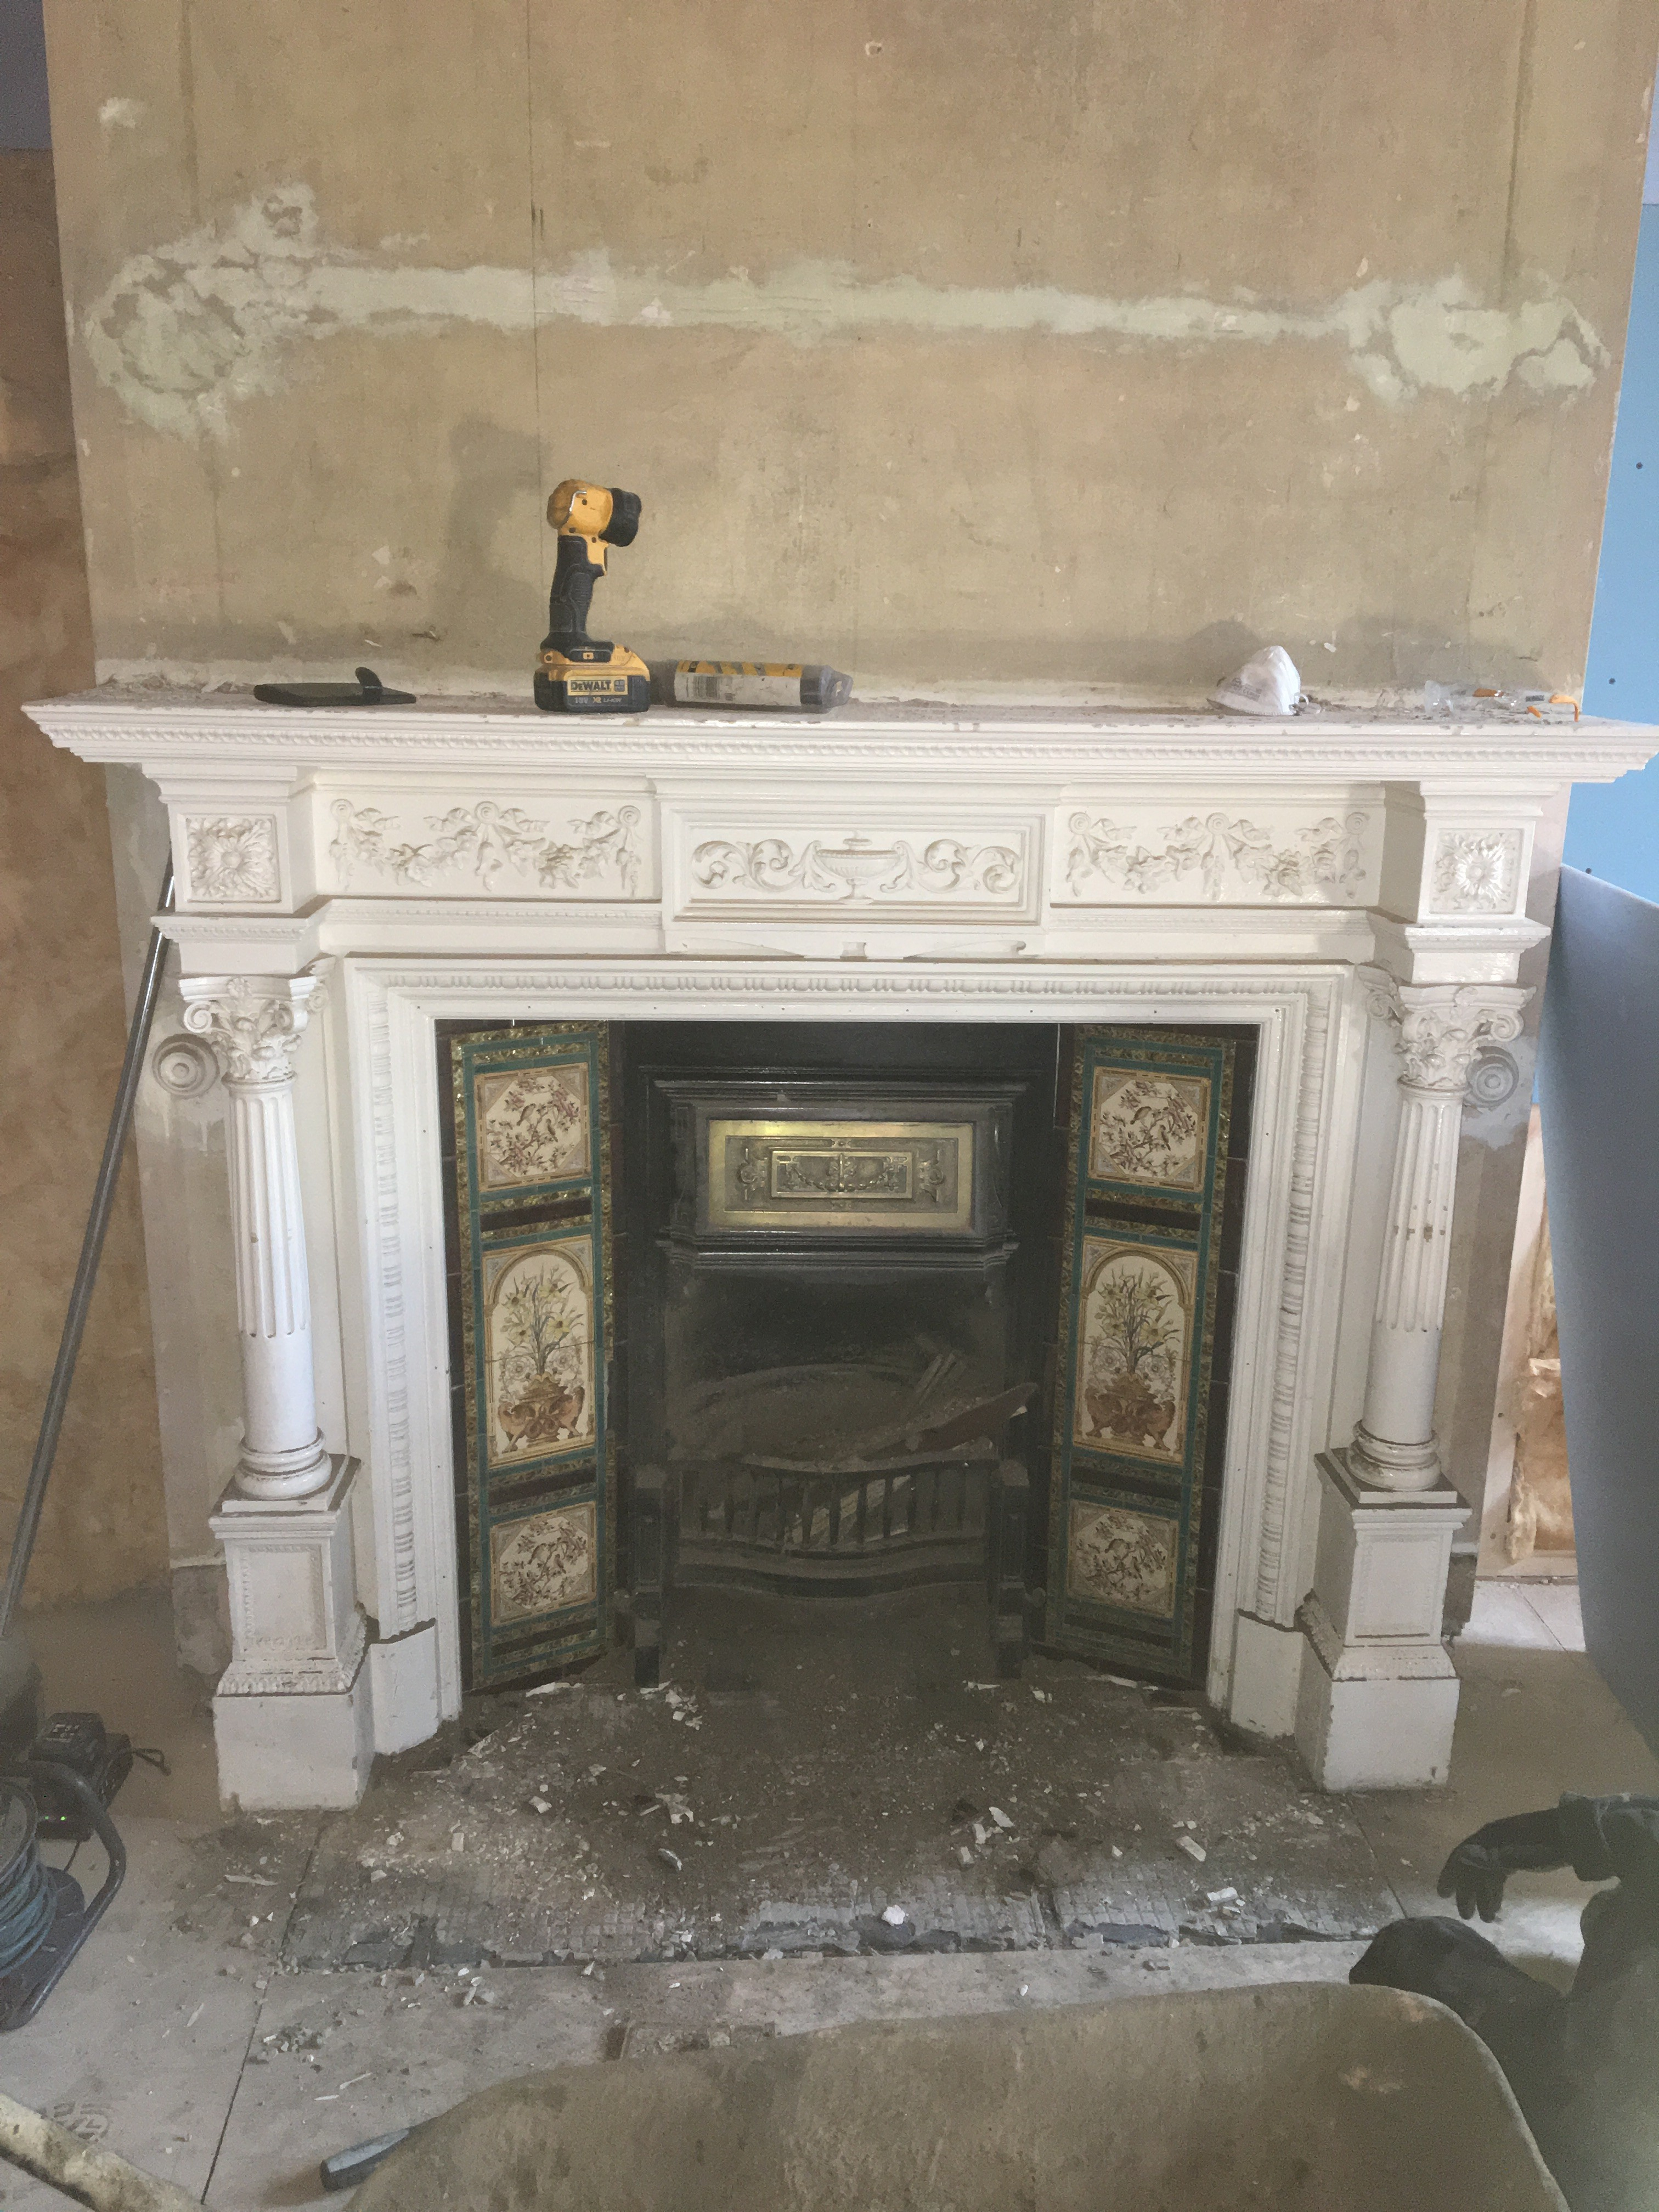 theater decorator office mantels gas white furniture image tiles antique mantel fronts a the home fireplace ideas decor of concepts interiors design christmas new looking ja decorating